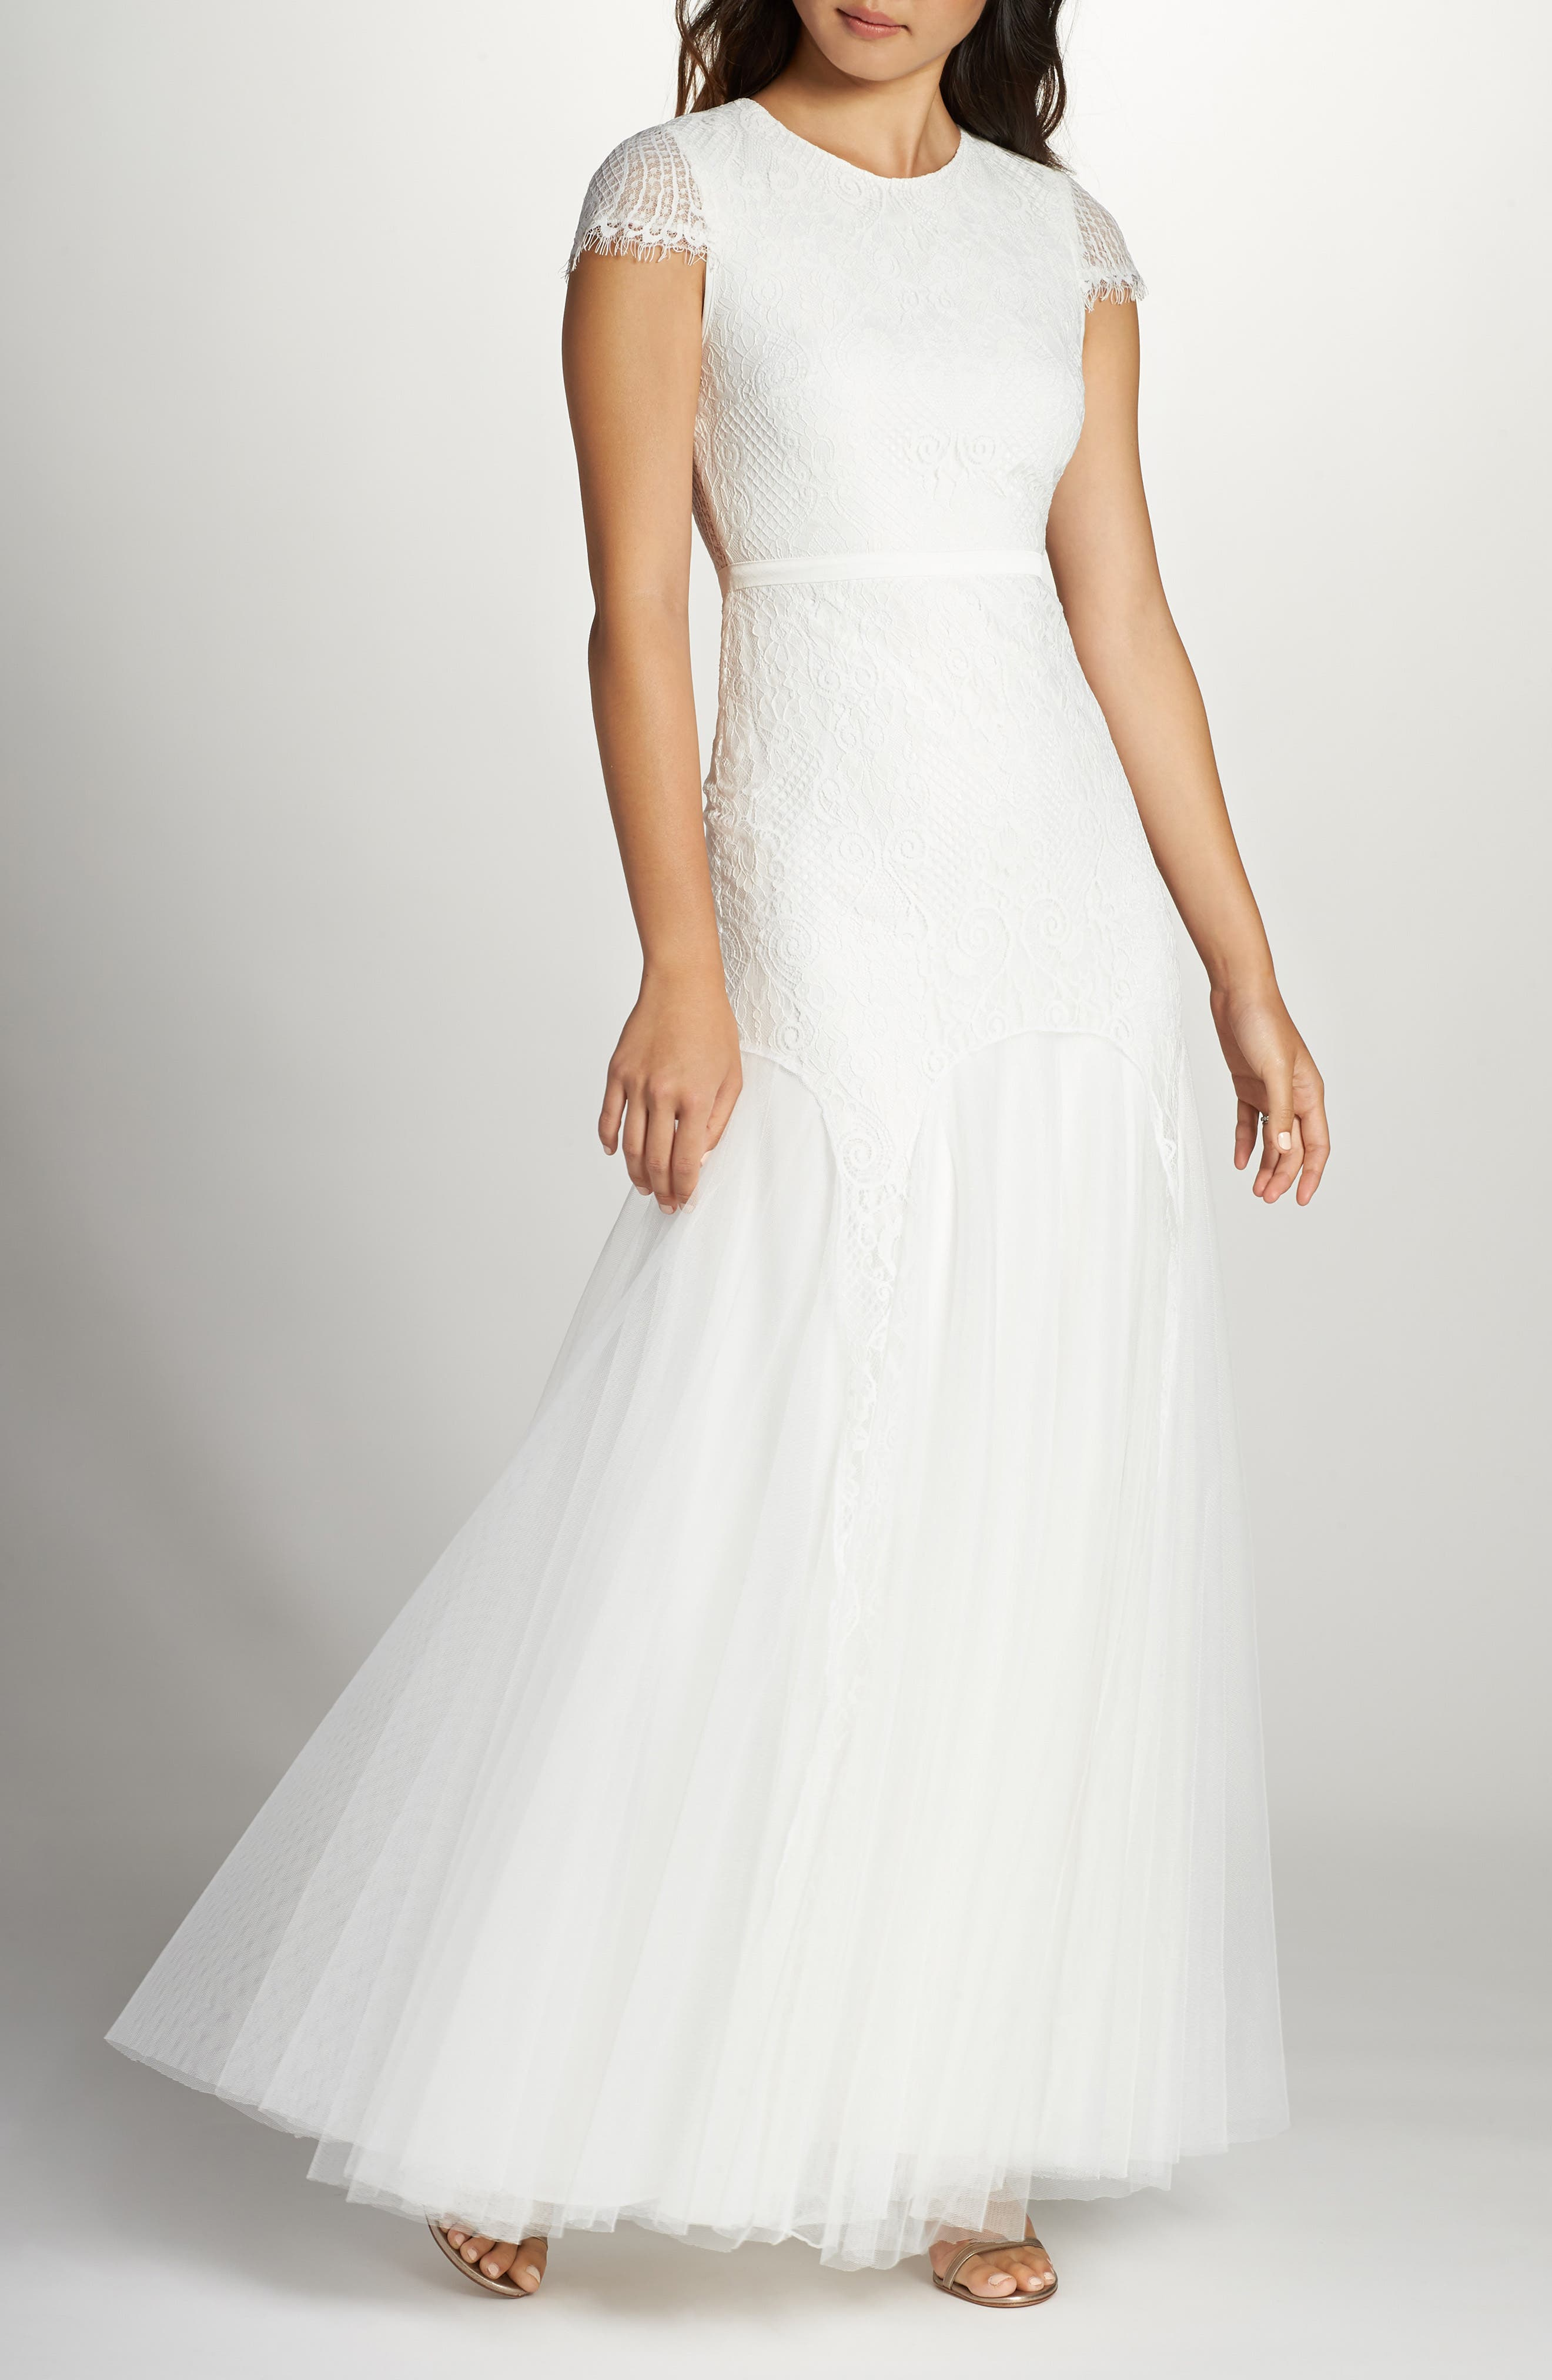 FAME AND PARTNERS FAME & PARTNERS DENEVUE LACE & TULLE A-LINE GOWN